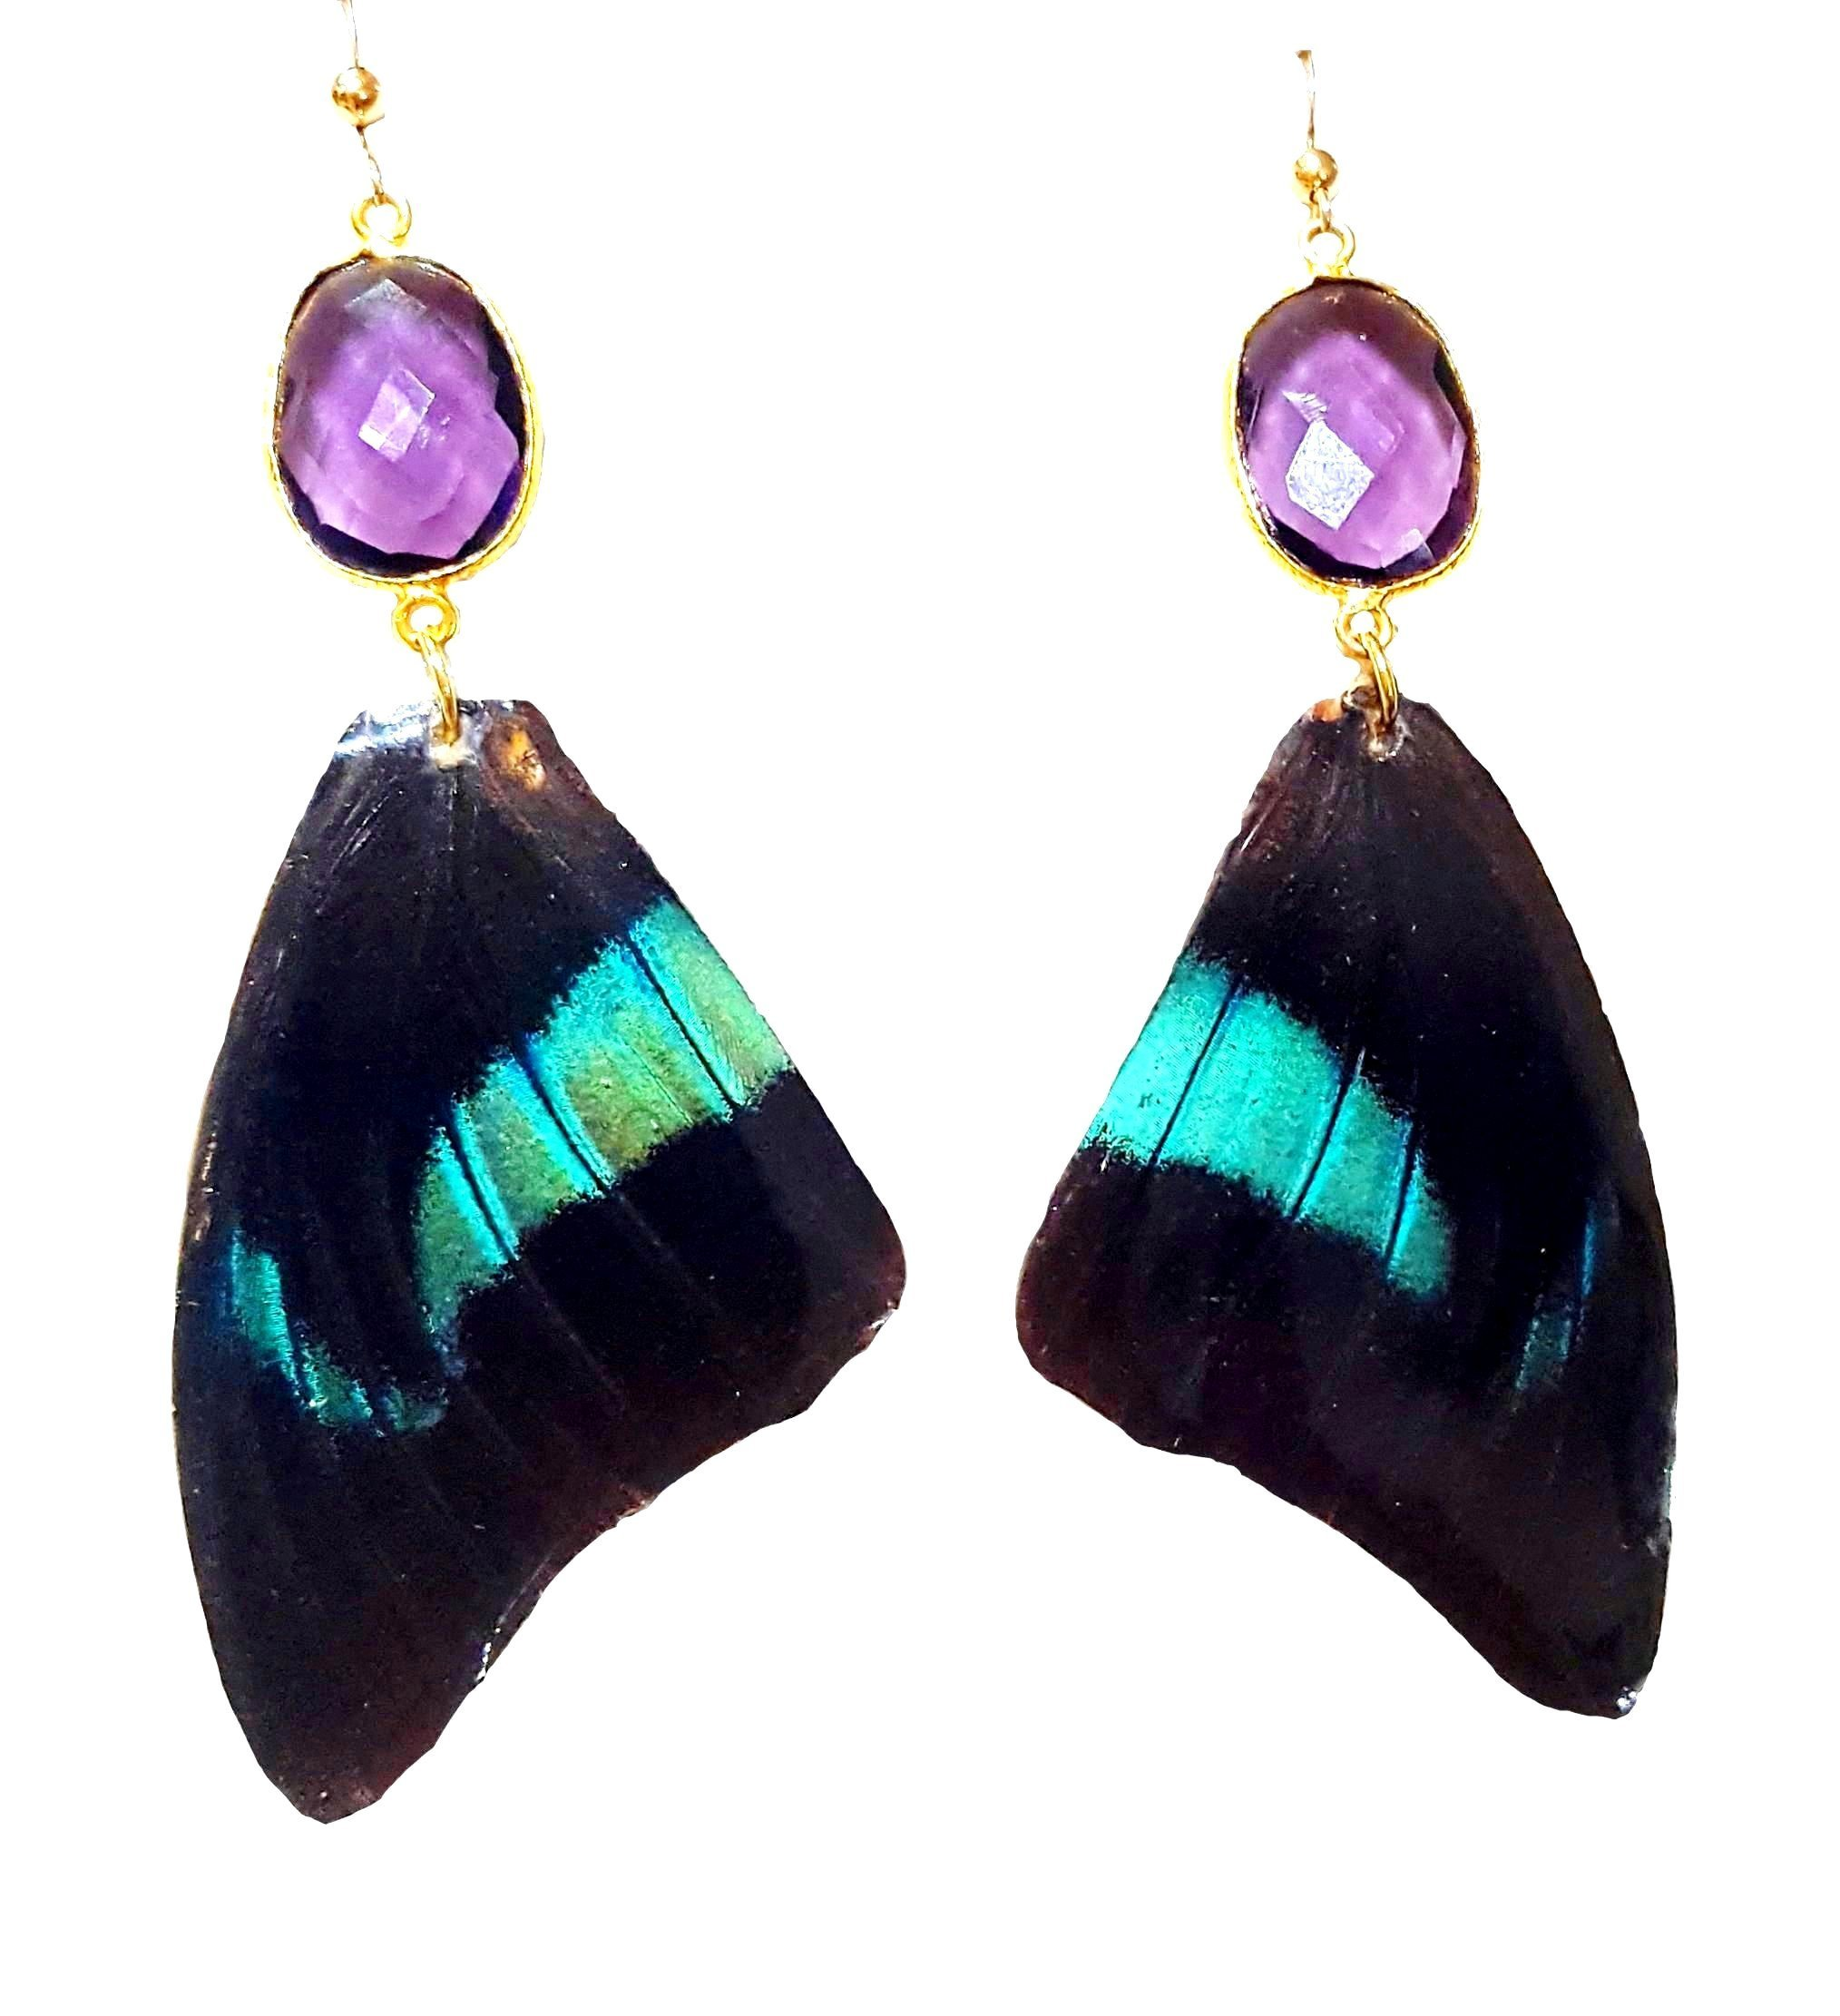 butterfly wing earrings, butterfly earrings, butterfly wing jewelry, butterfly jewelry